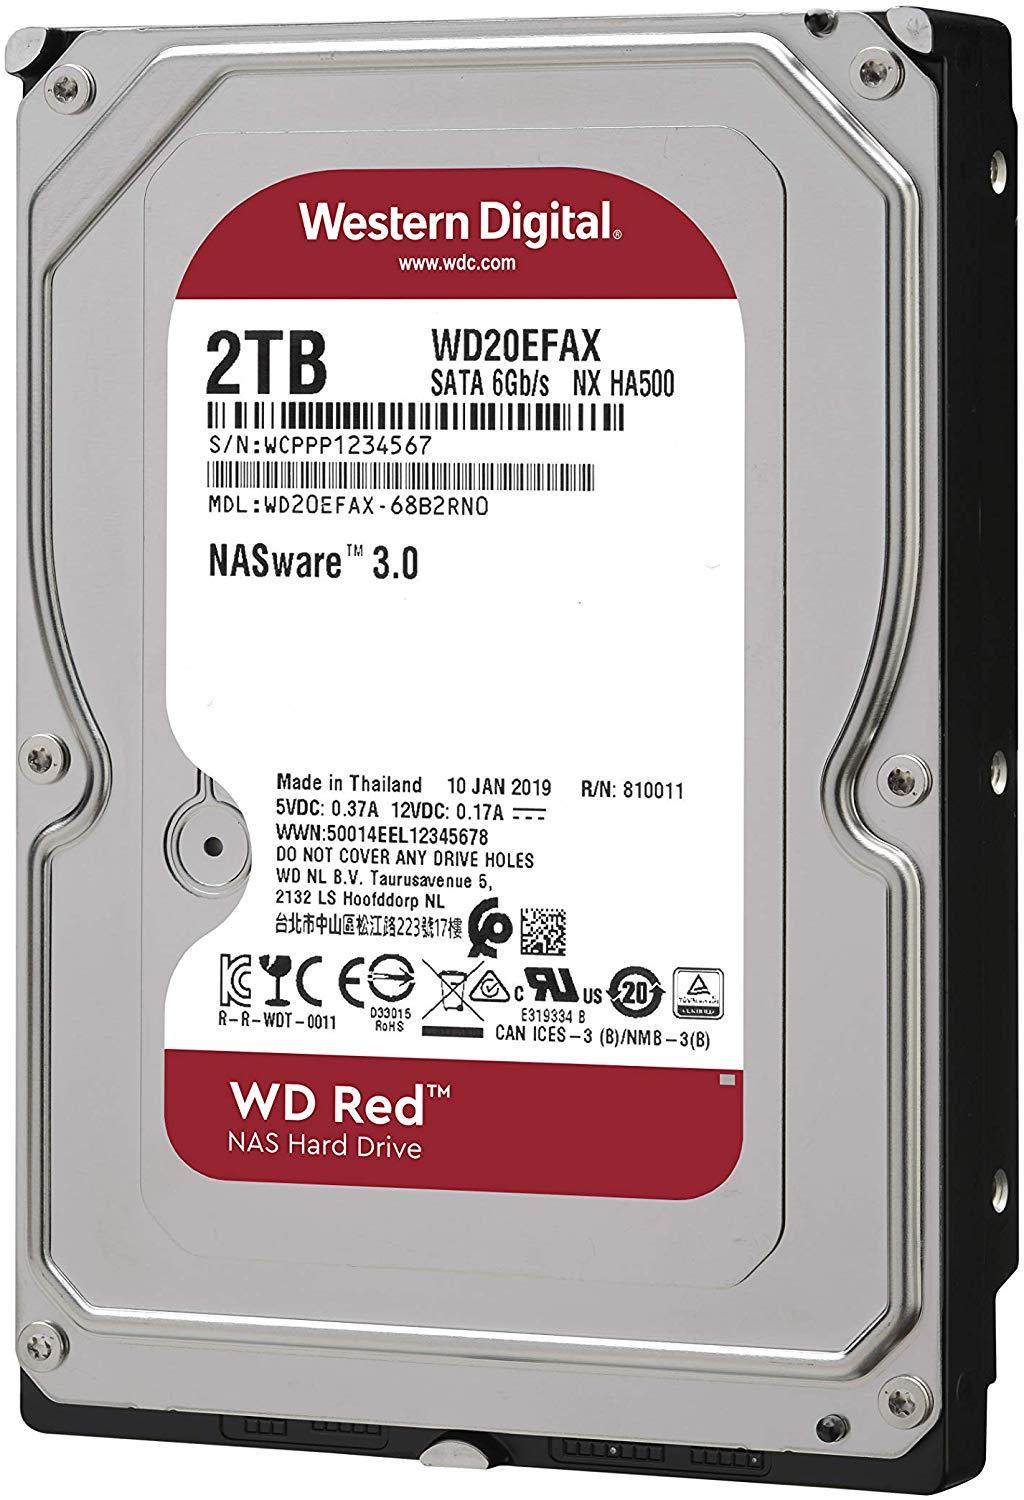 Хард диск WD RED, 2TB, 5400rpm, 256MB, SATA 3